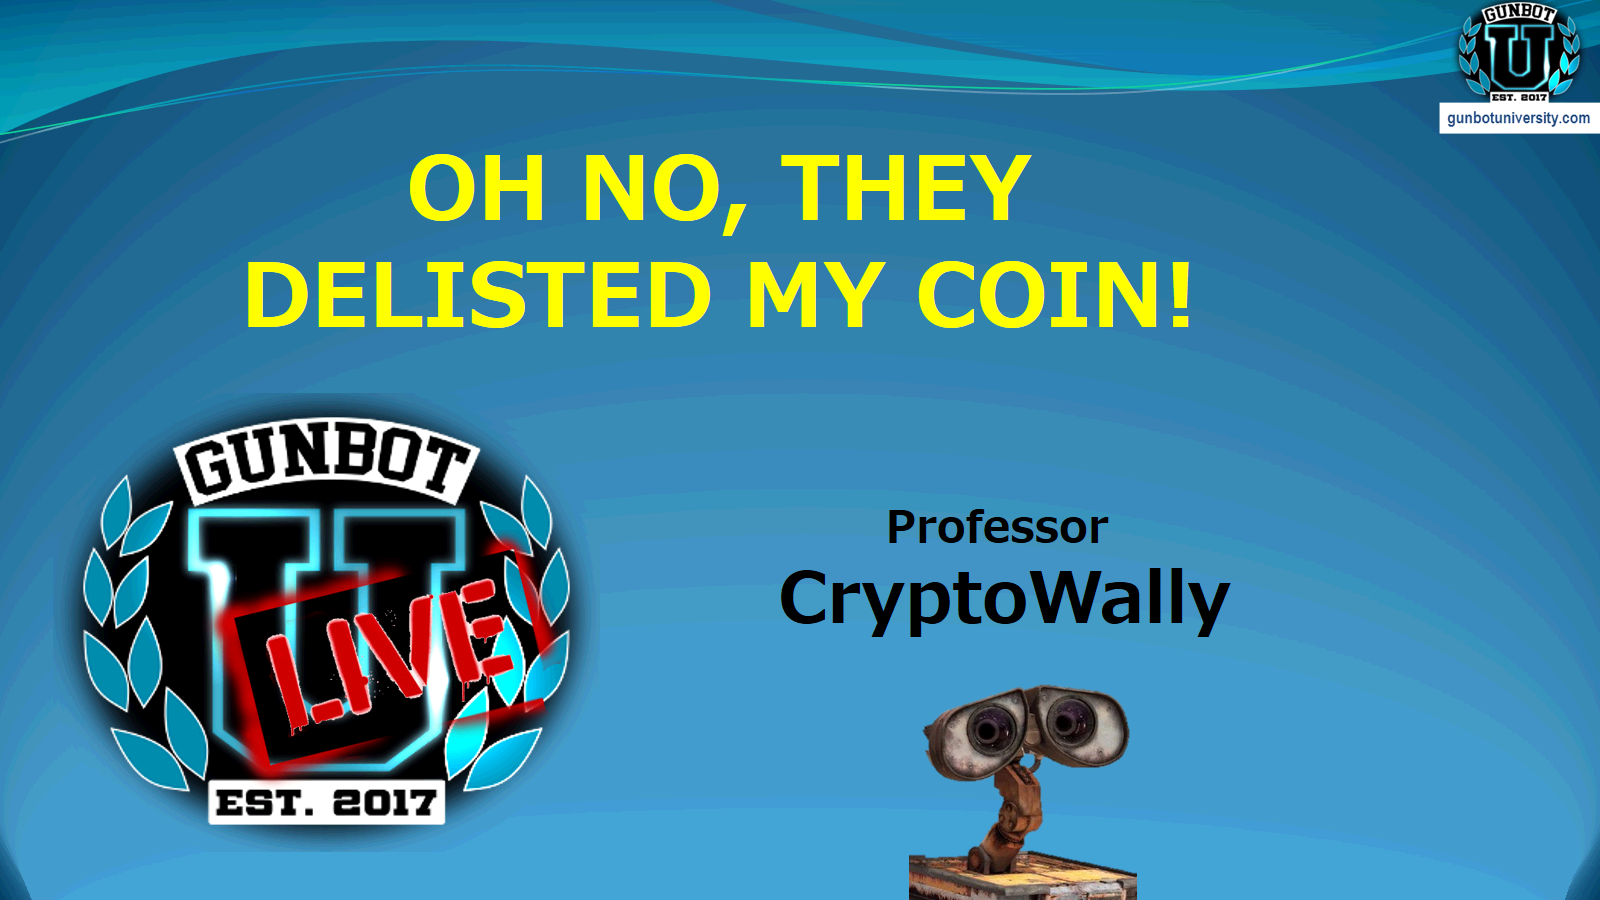 Oh no! They delisted my coin!